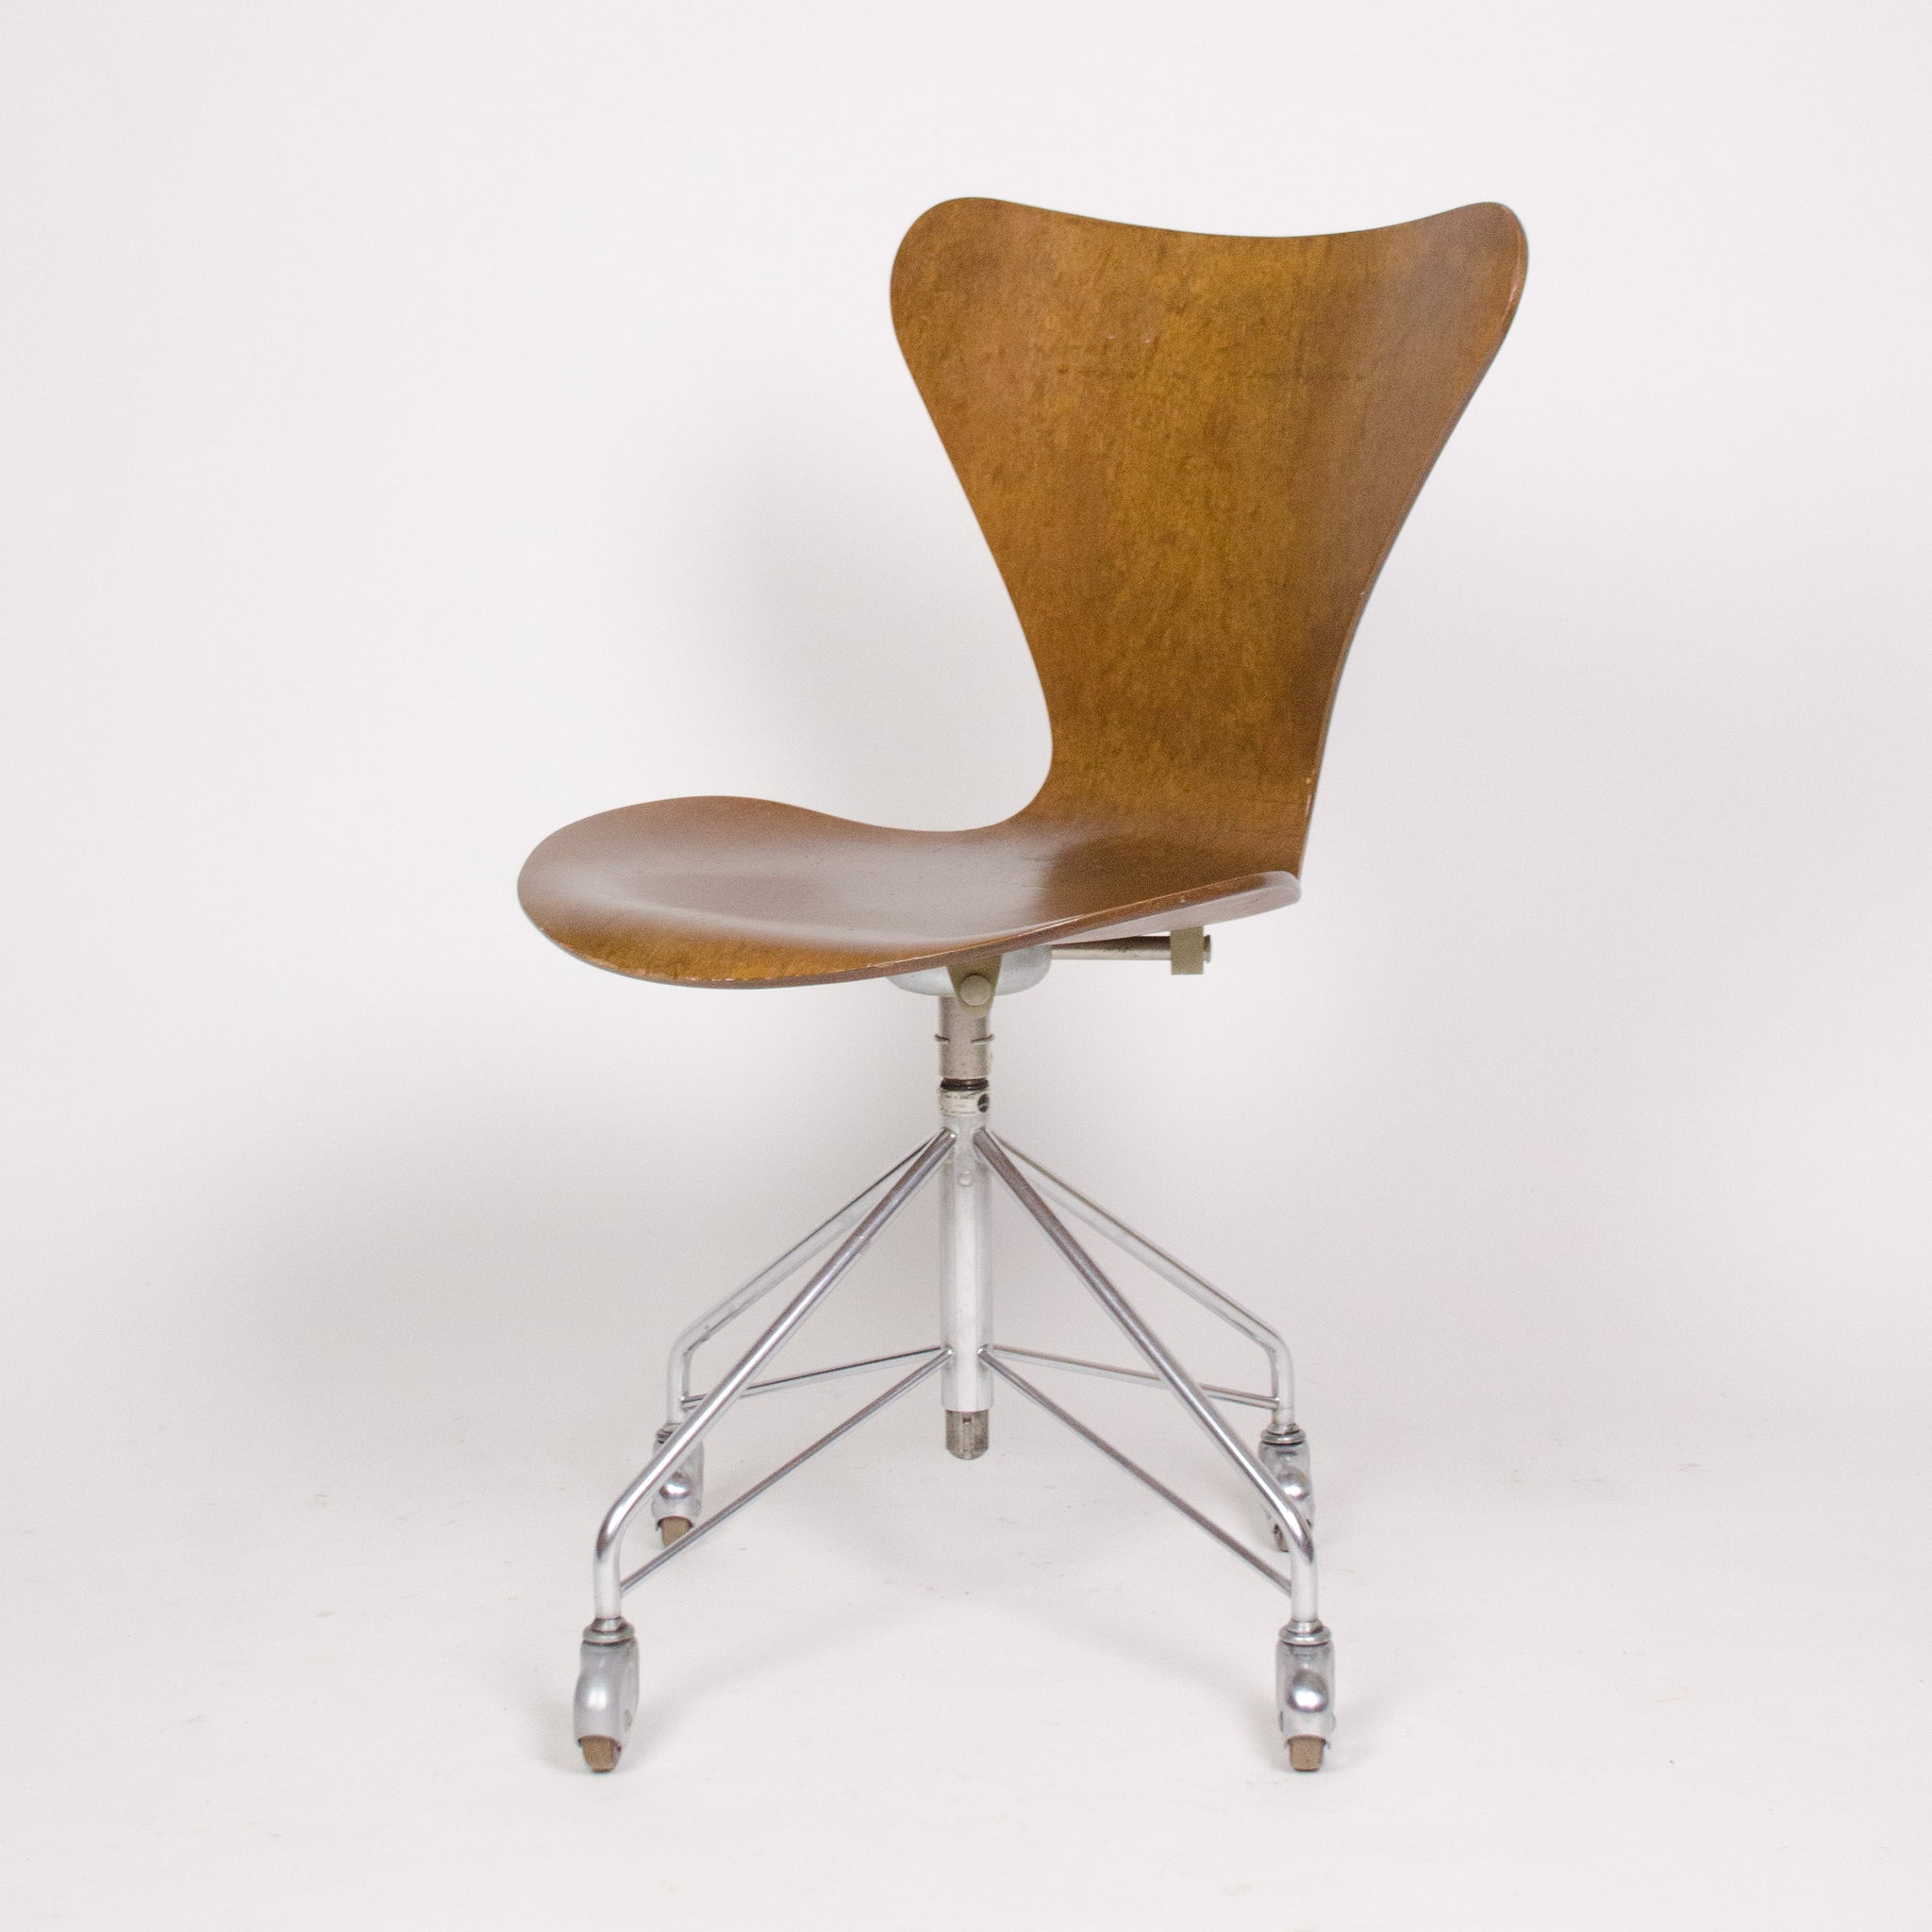 en product jacobsen fritz inquiry chair s art hansen okay arne